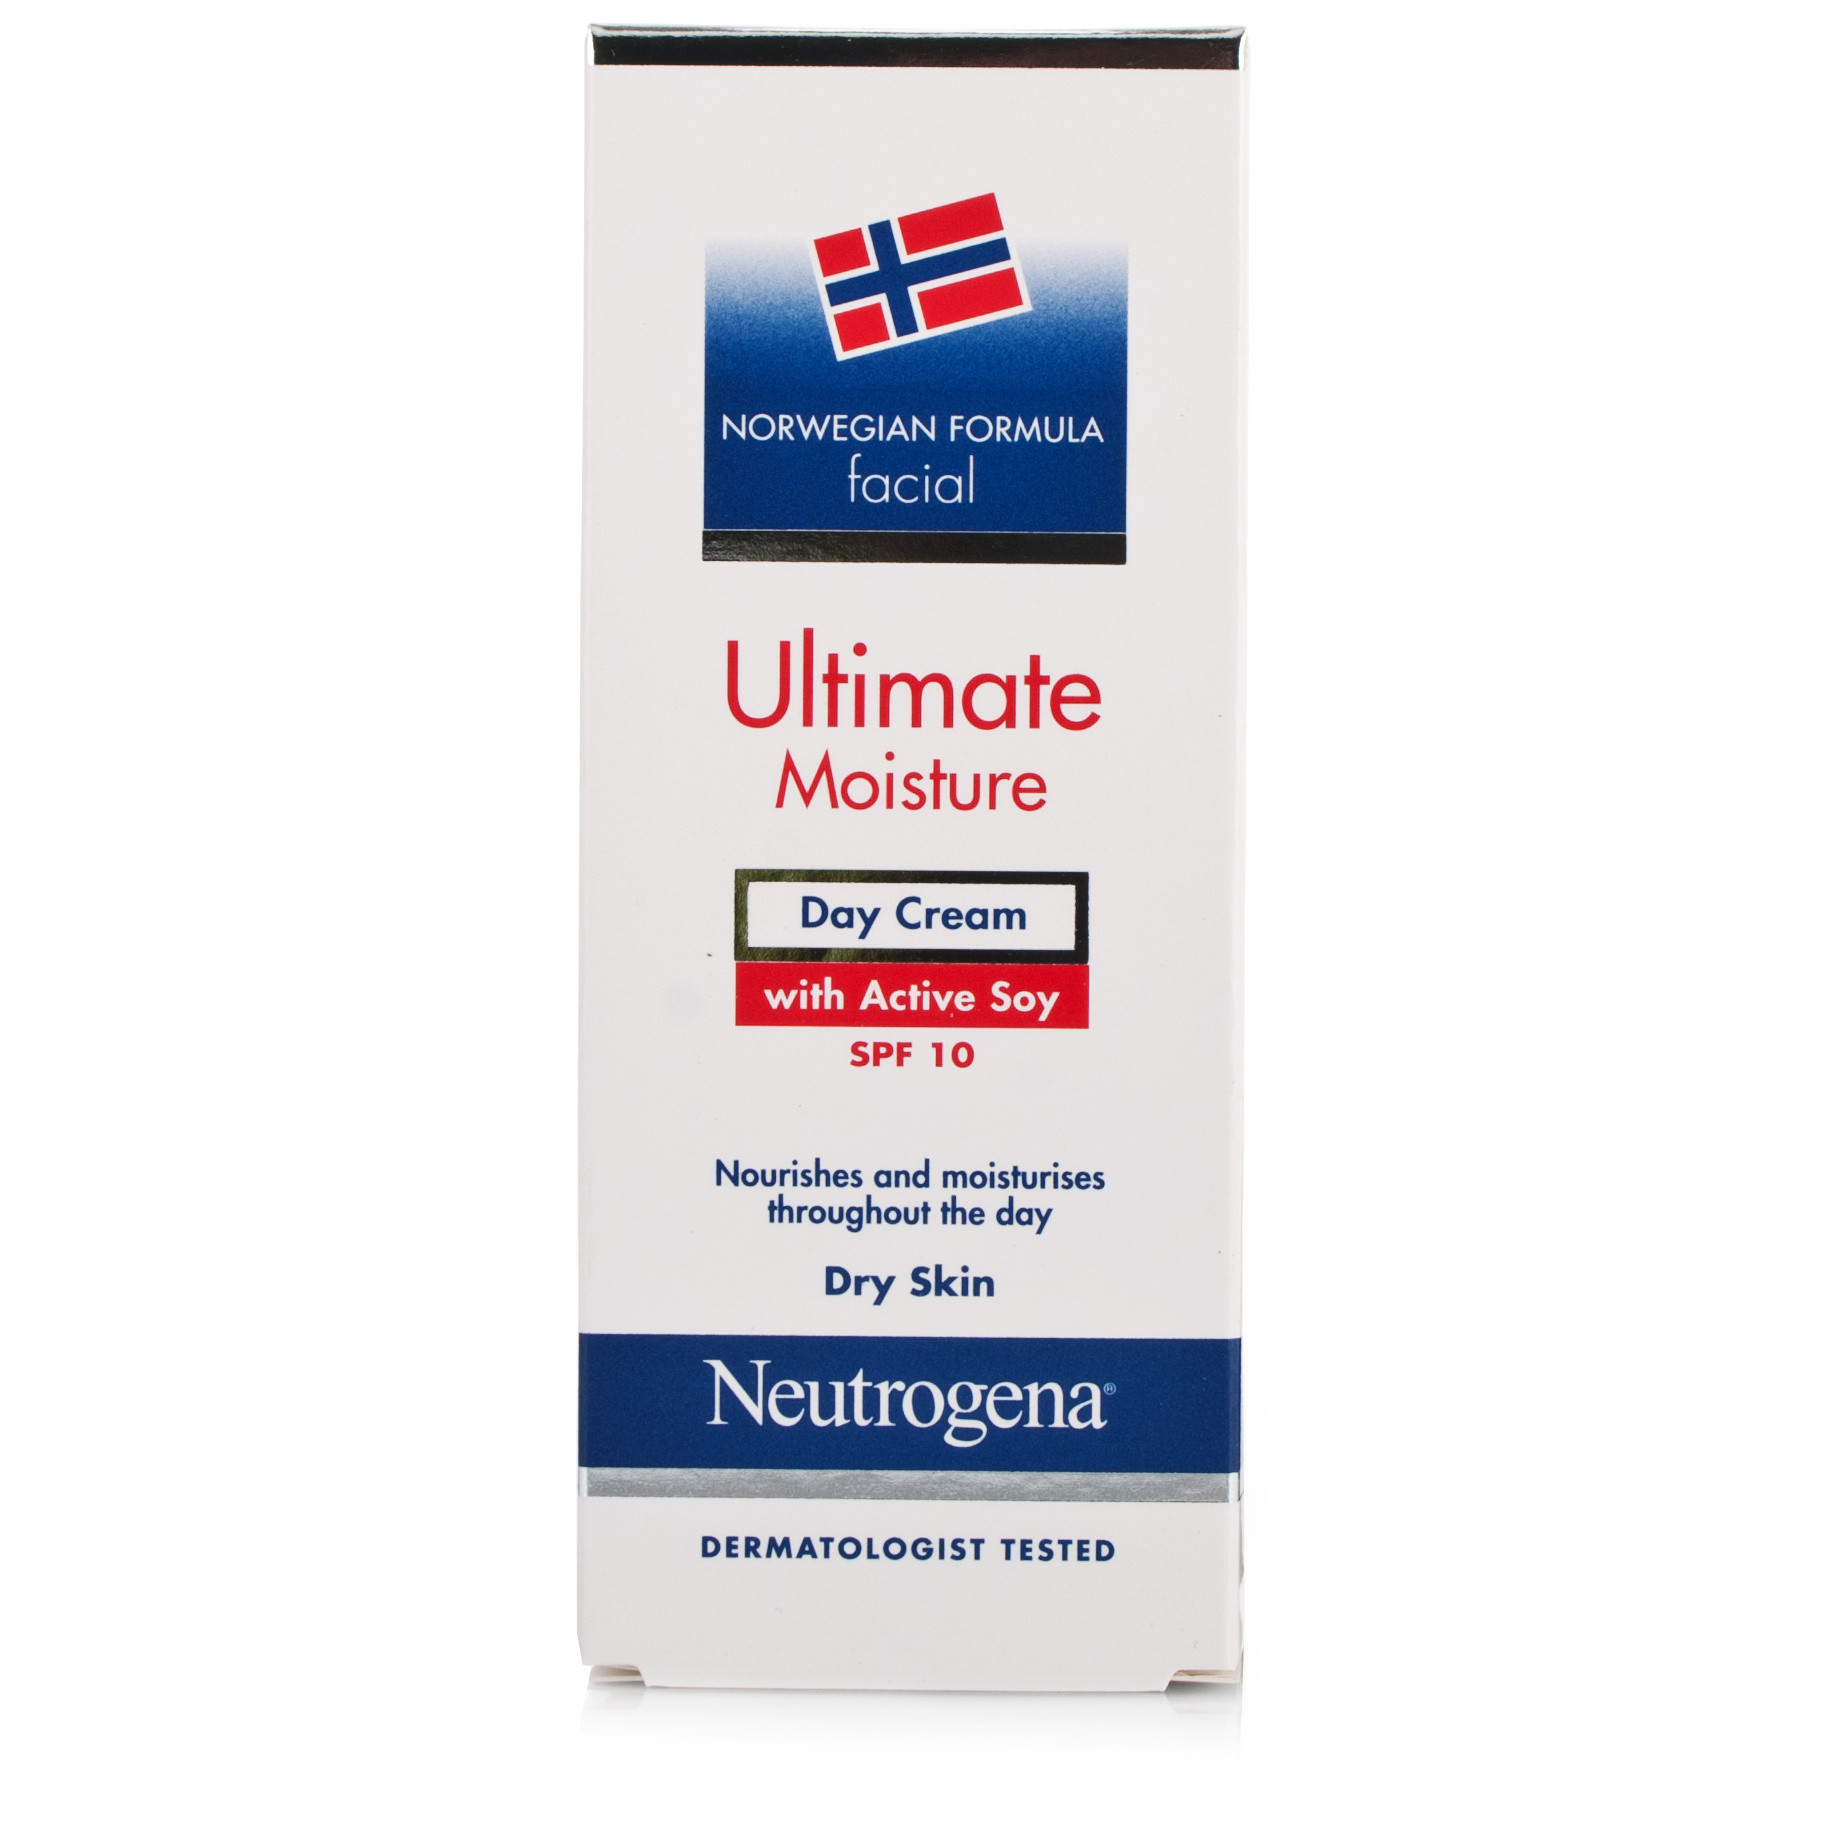 Neutrogena Norwegian Formula Ultimate Moisture Day Cream SPF 10